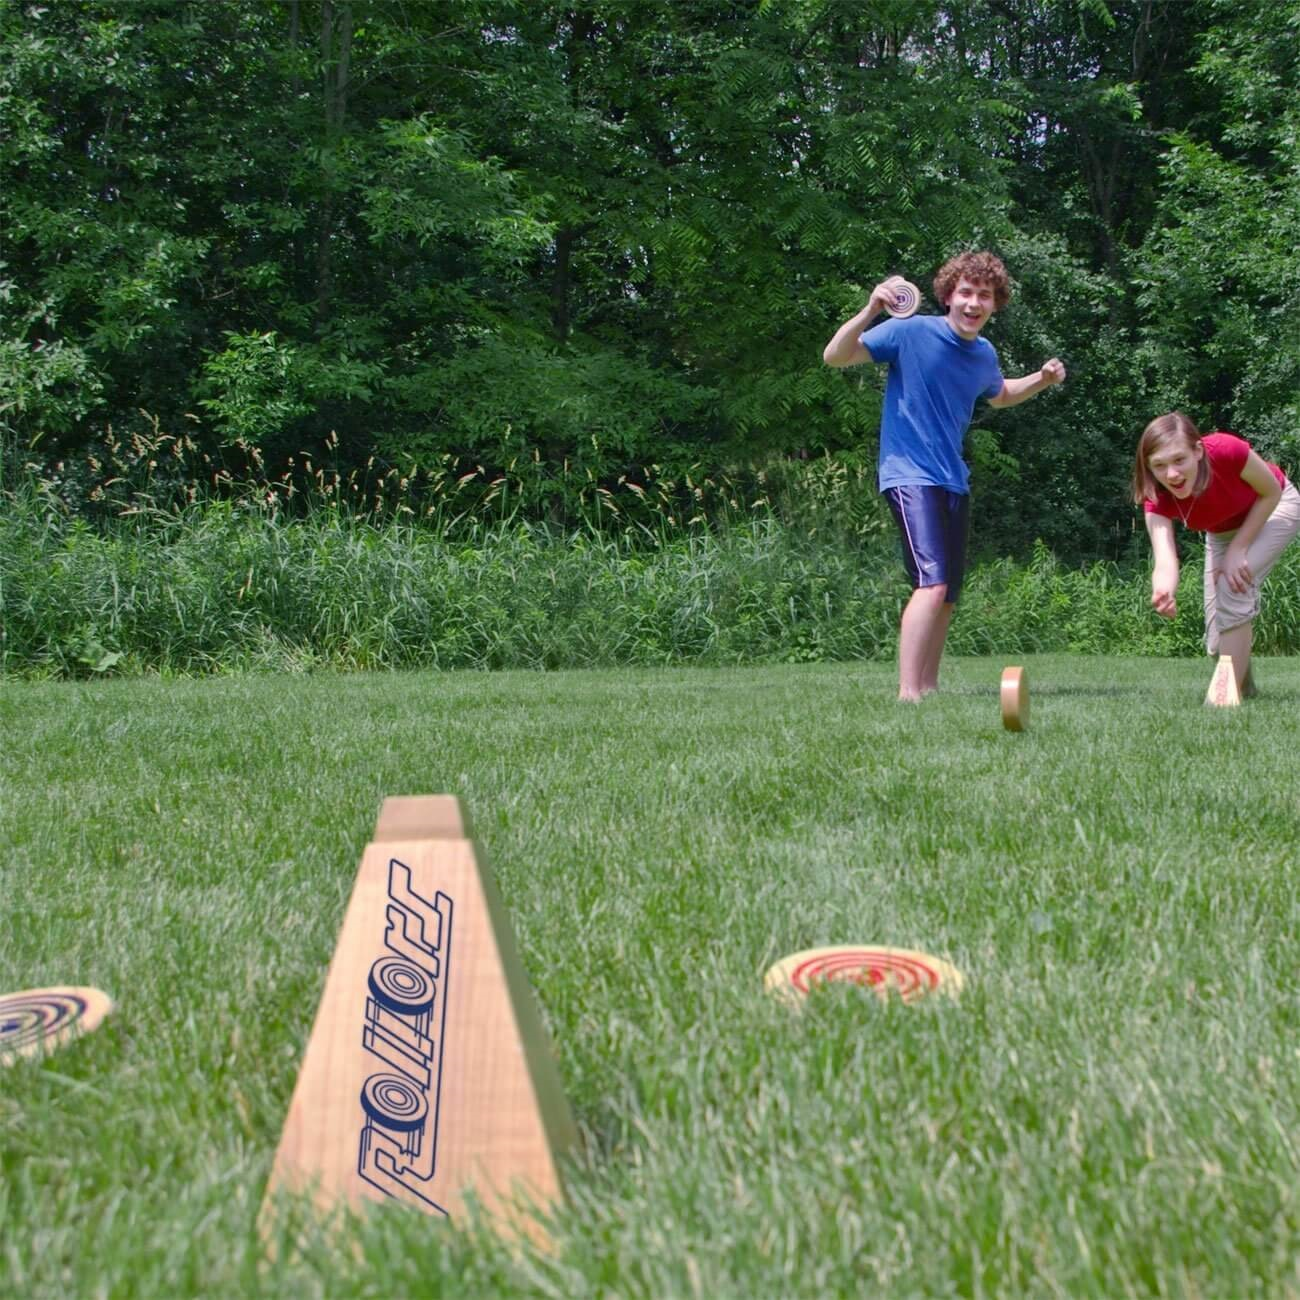 Top 10 Backyard Party Games For All Ages